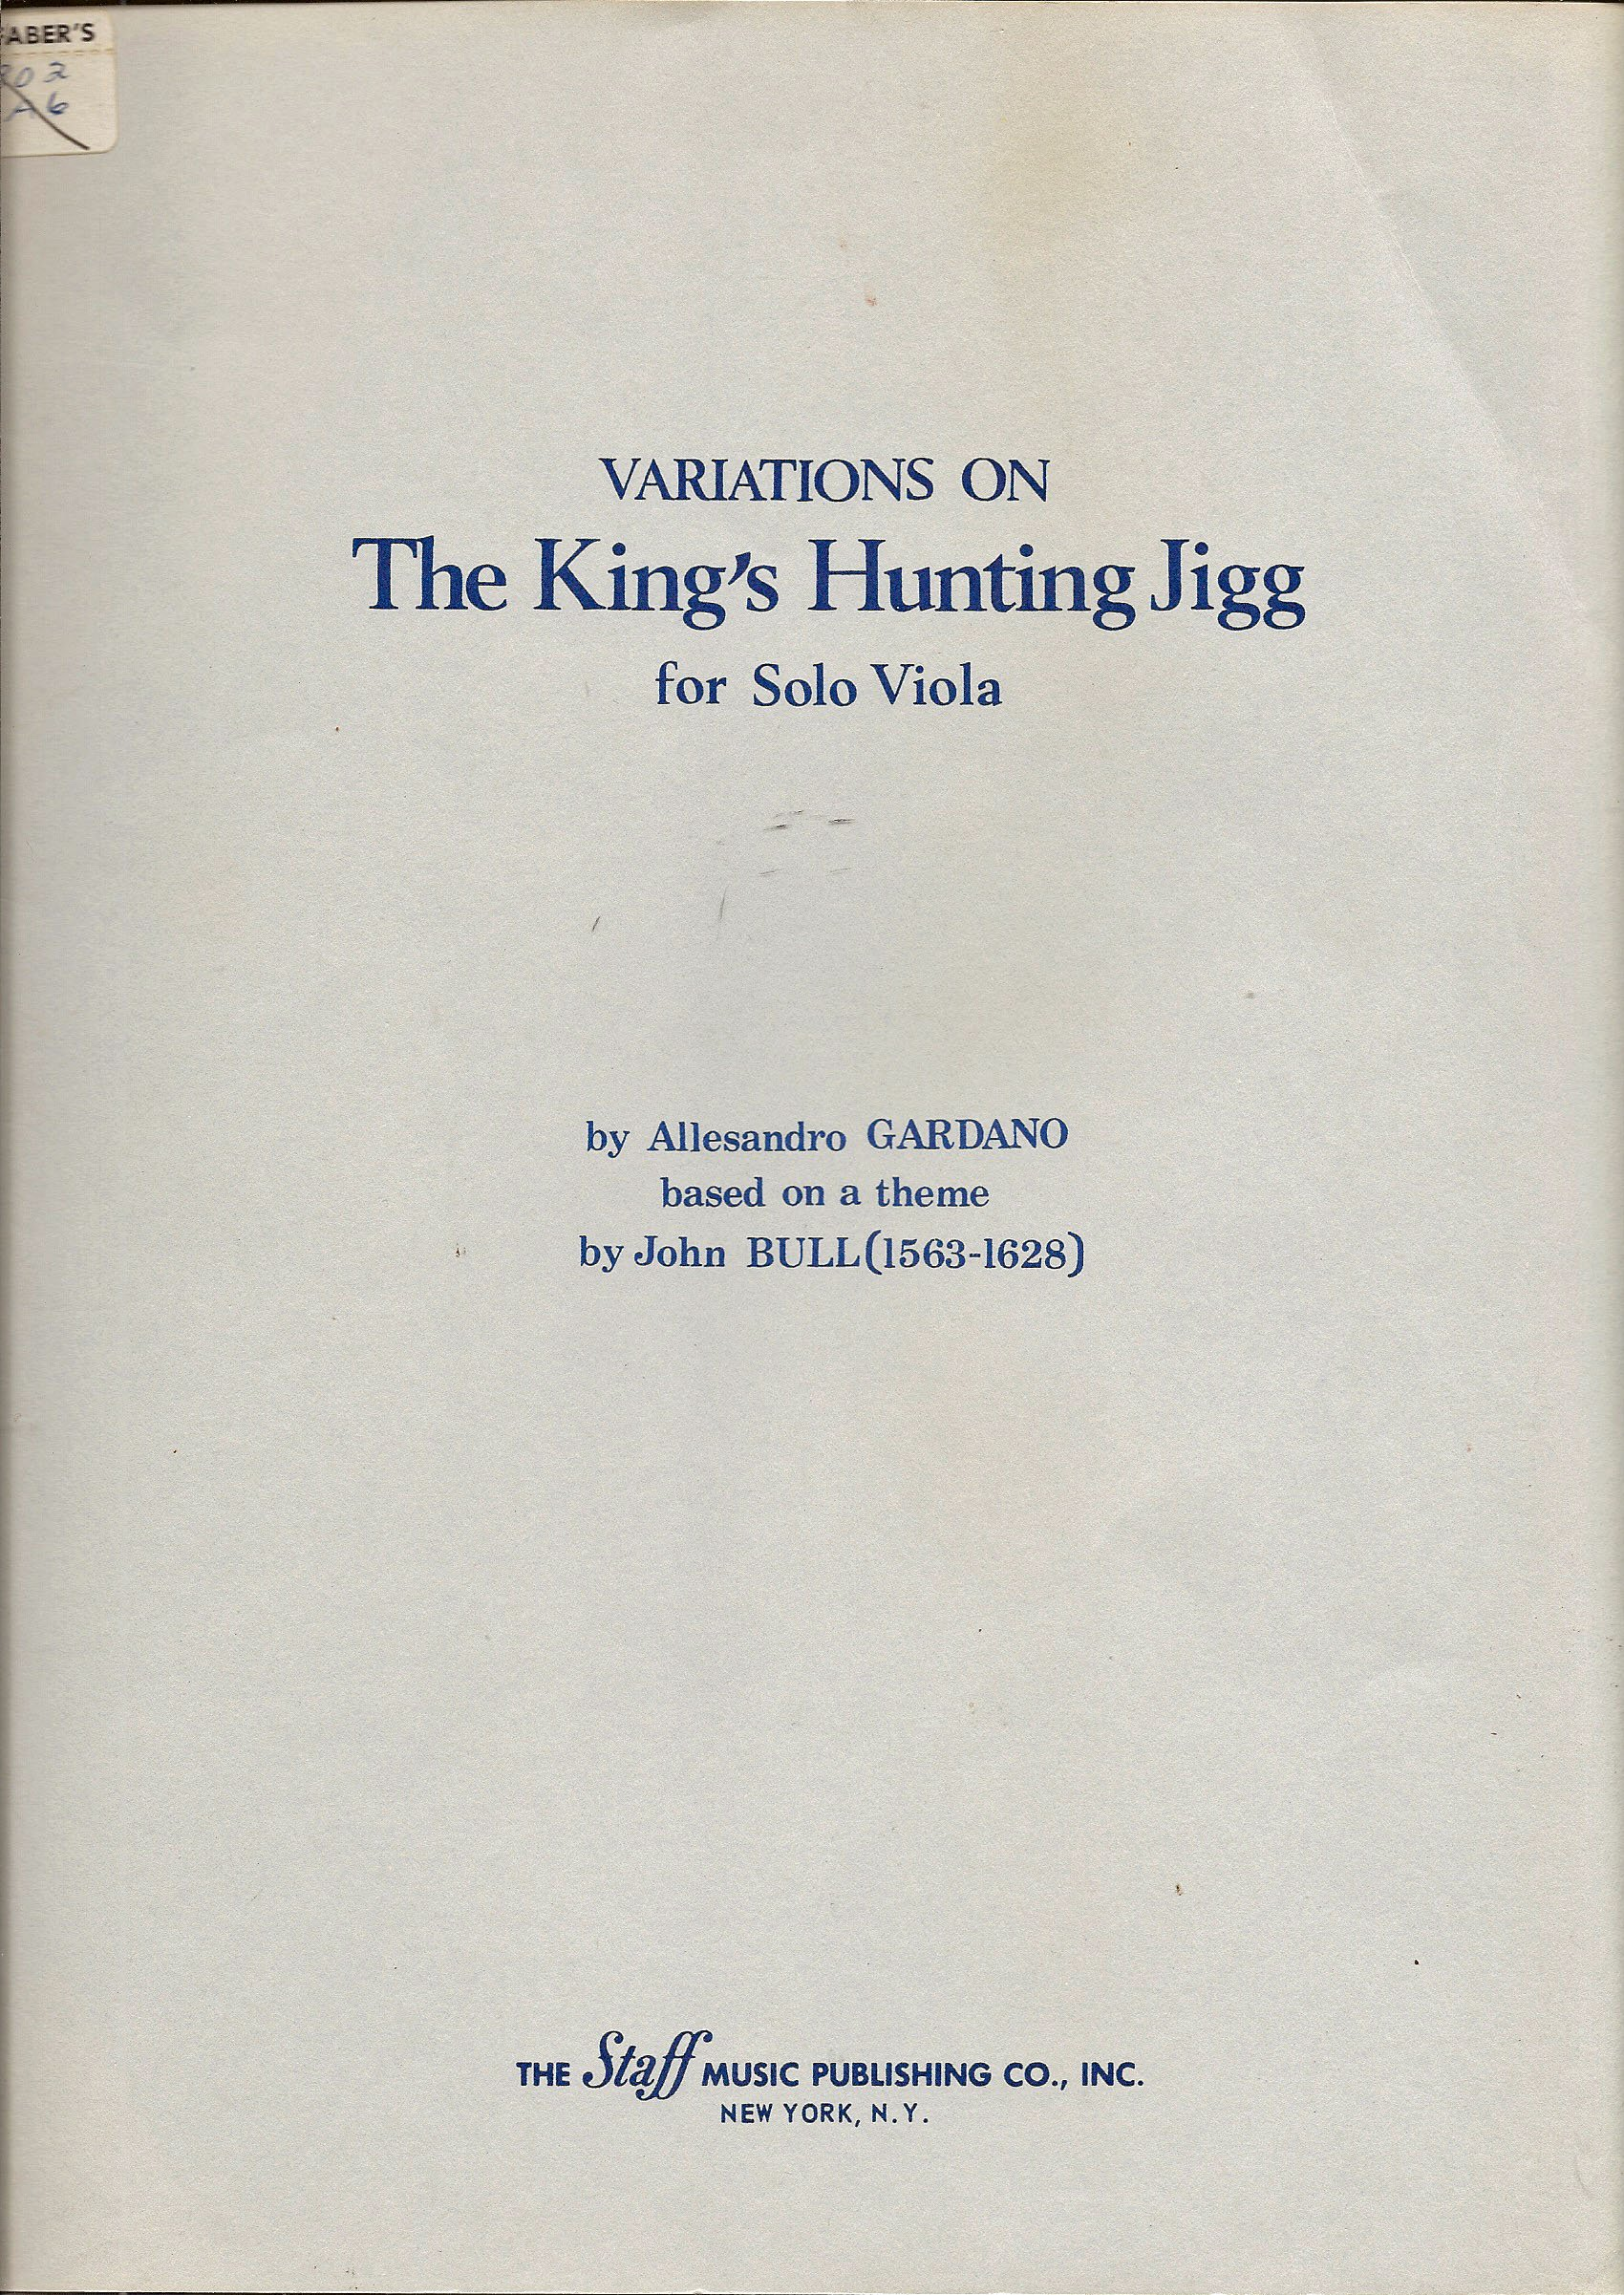 The Kings Hunting Jigg